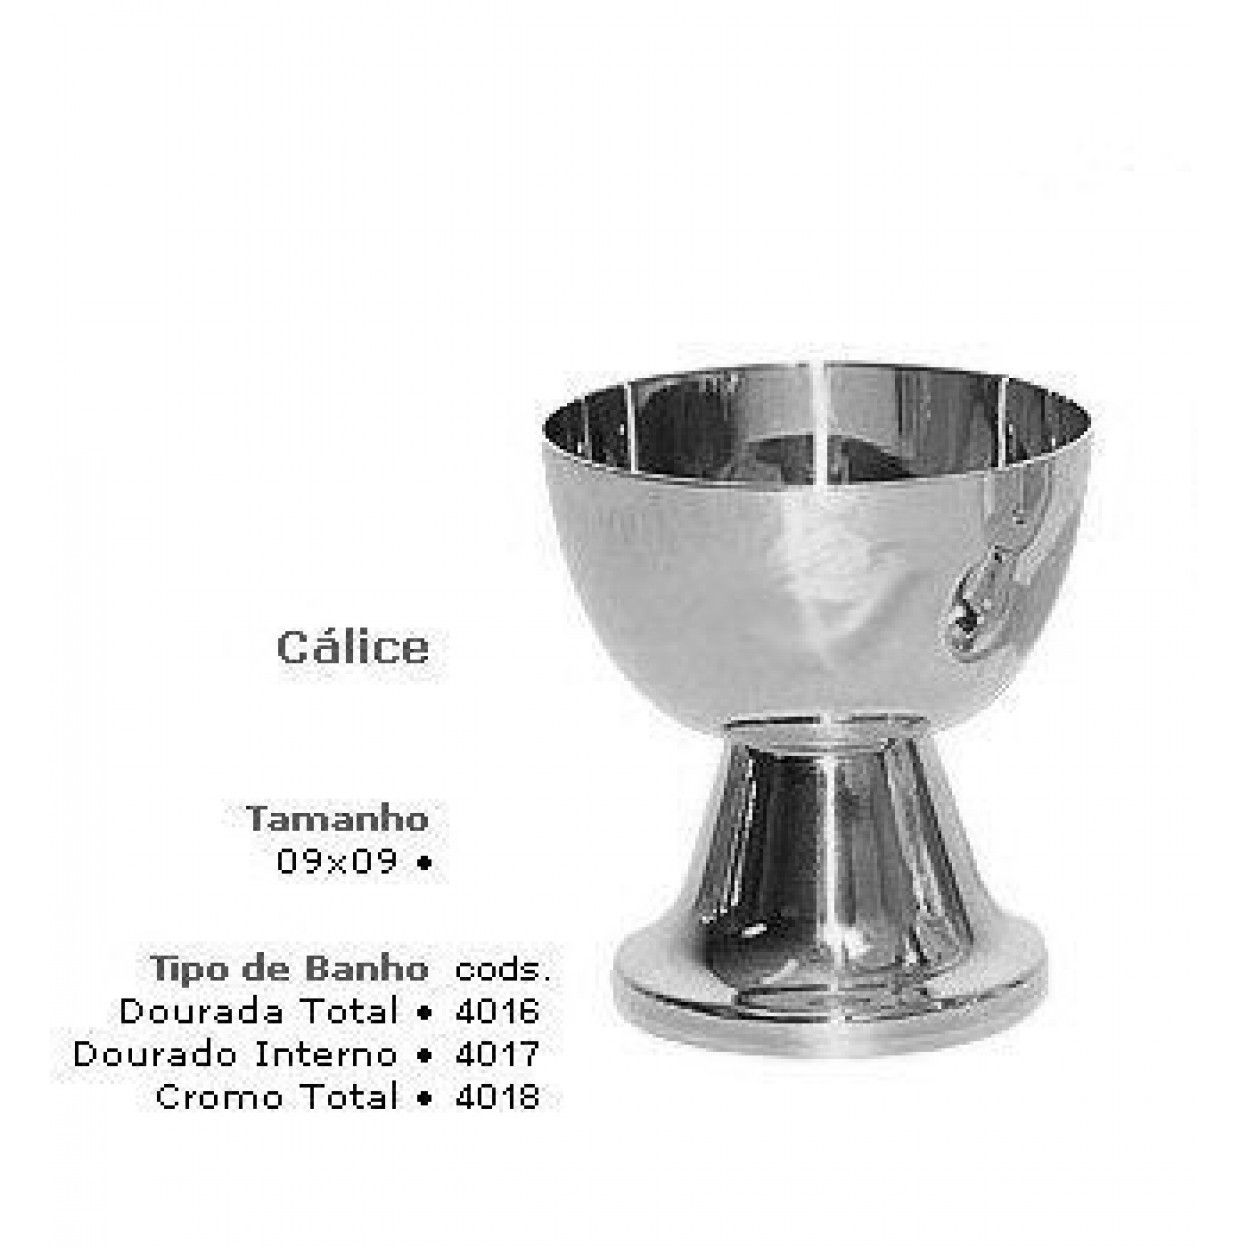 CALICE PEQUENO  4018 CROMO TOTAL